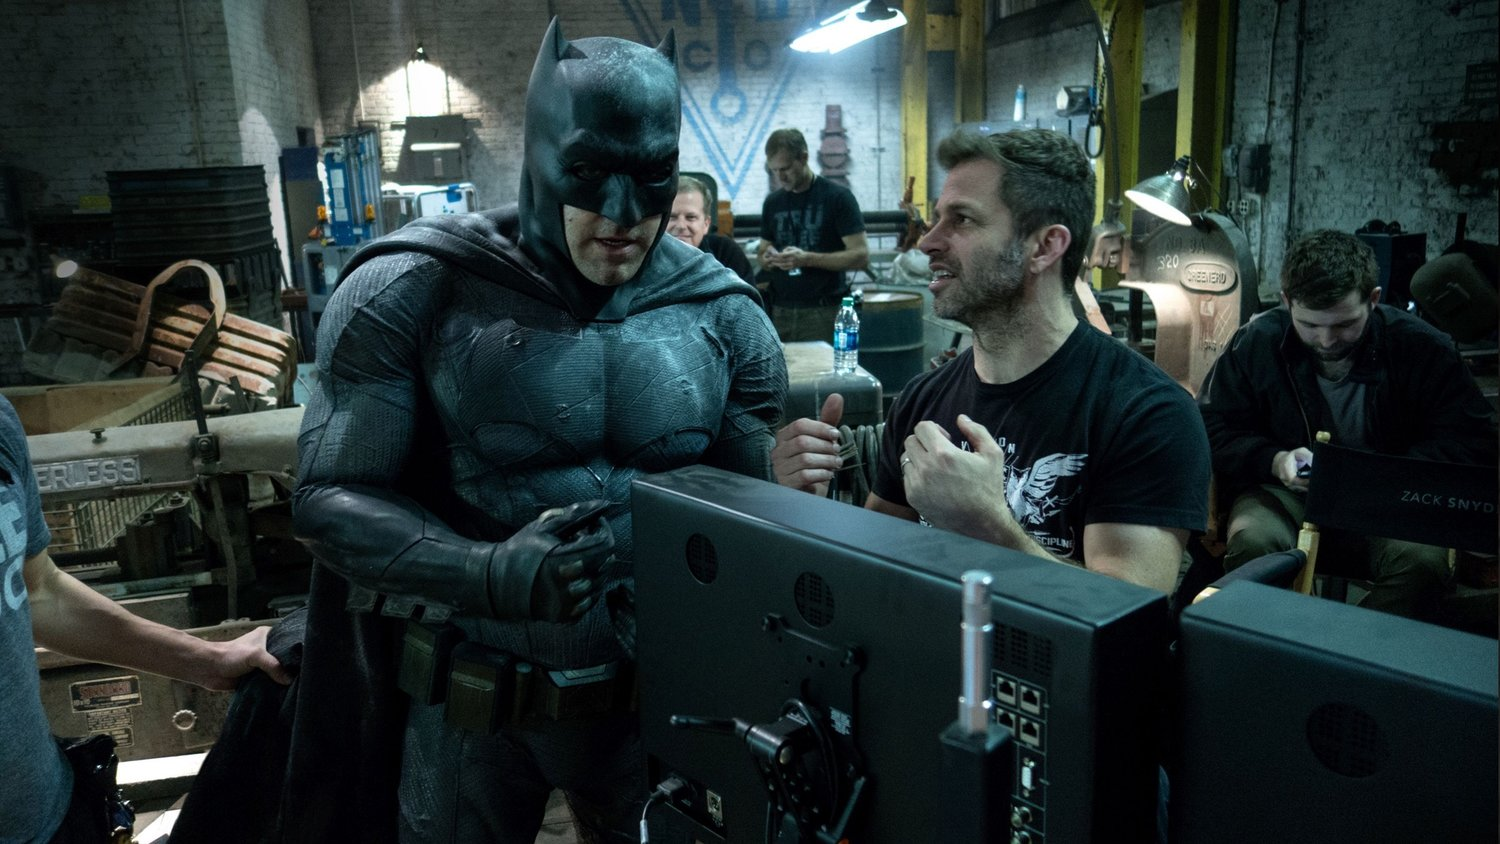 DC Film Fan Starts a Petition for Zack Snyder to Direct THE BATMAN